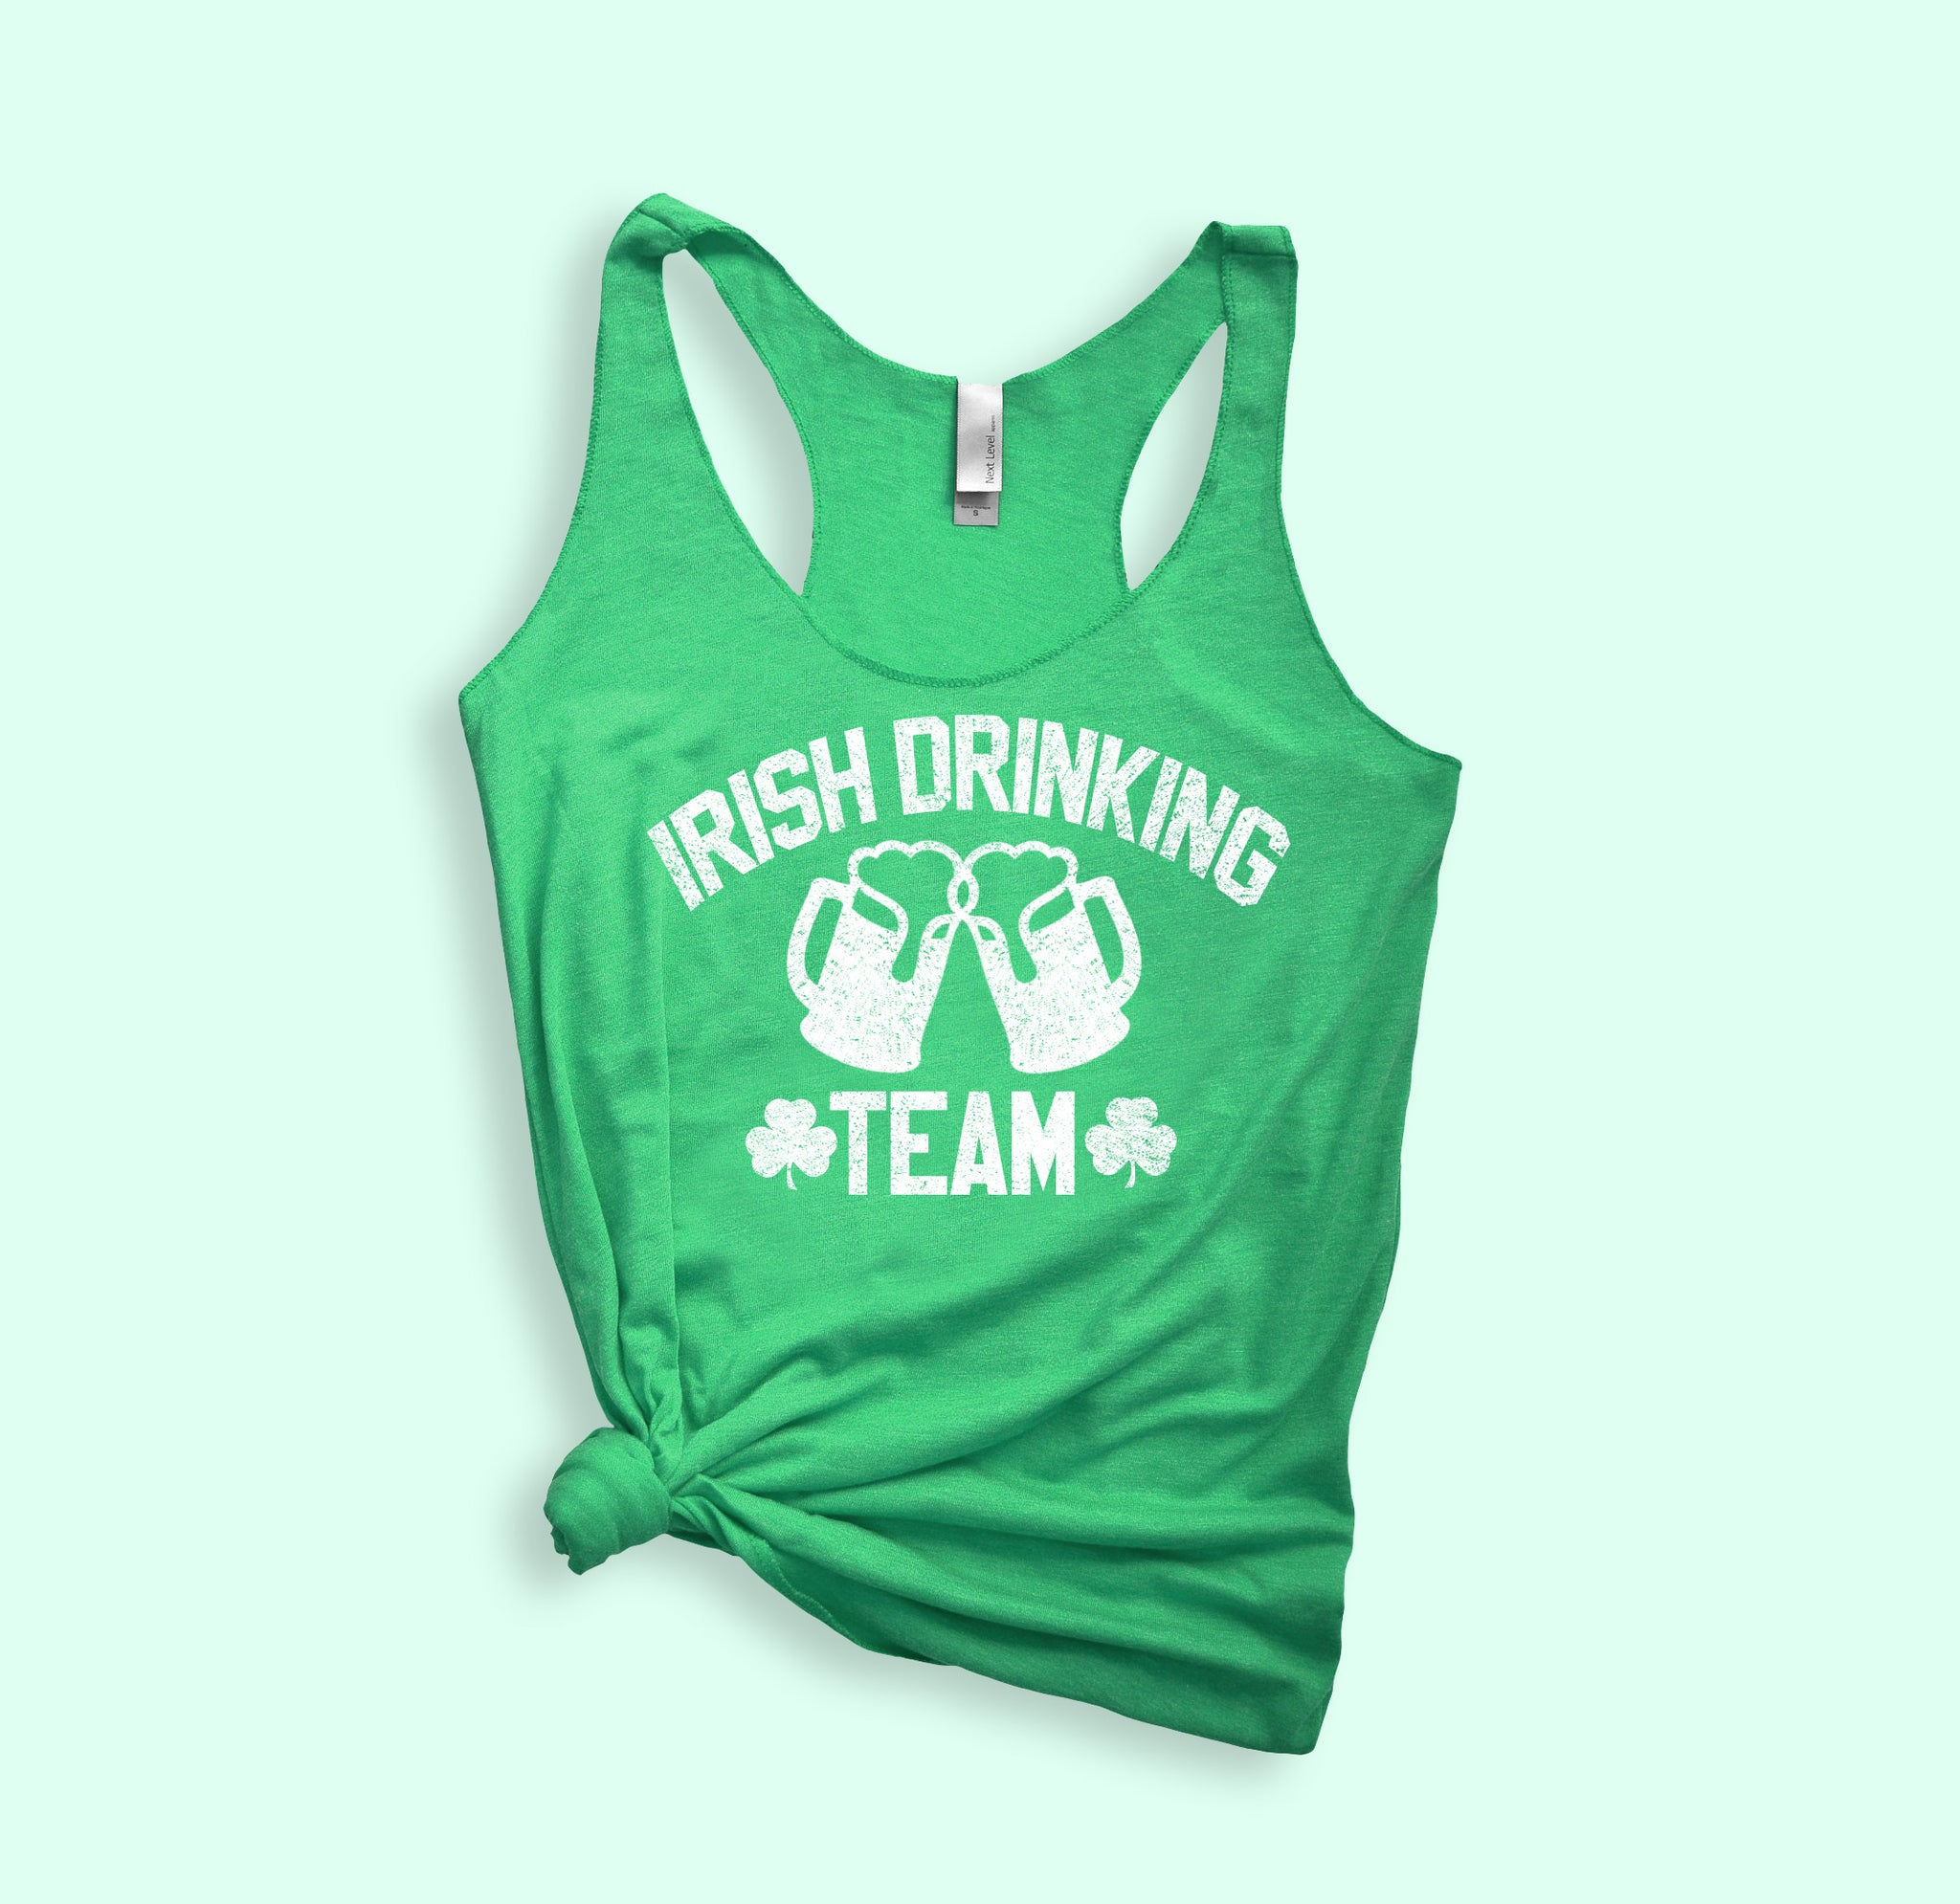 Irish Drinking Team Tank